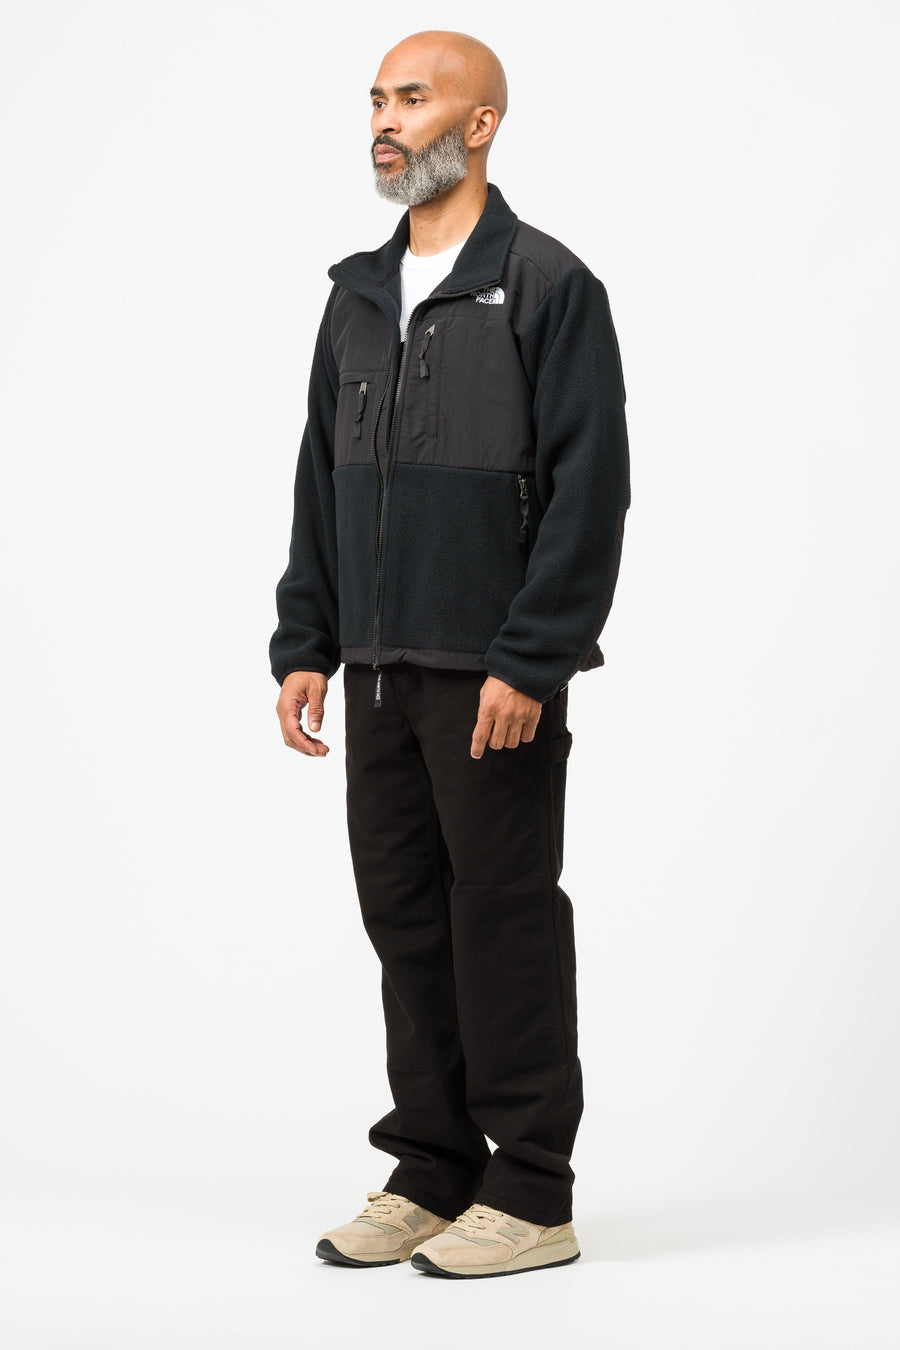 The North Face 95 Retro Denali Jacket in Black - Notre